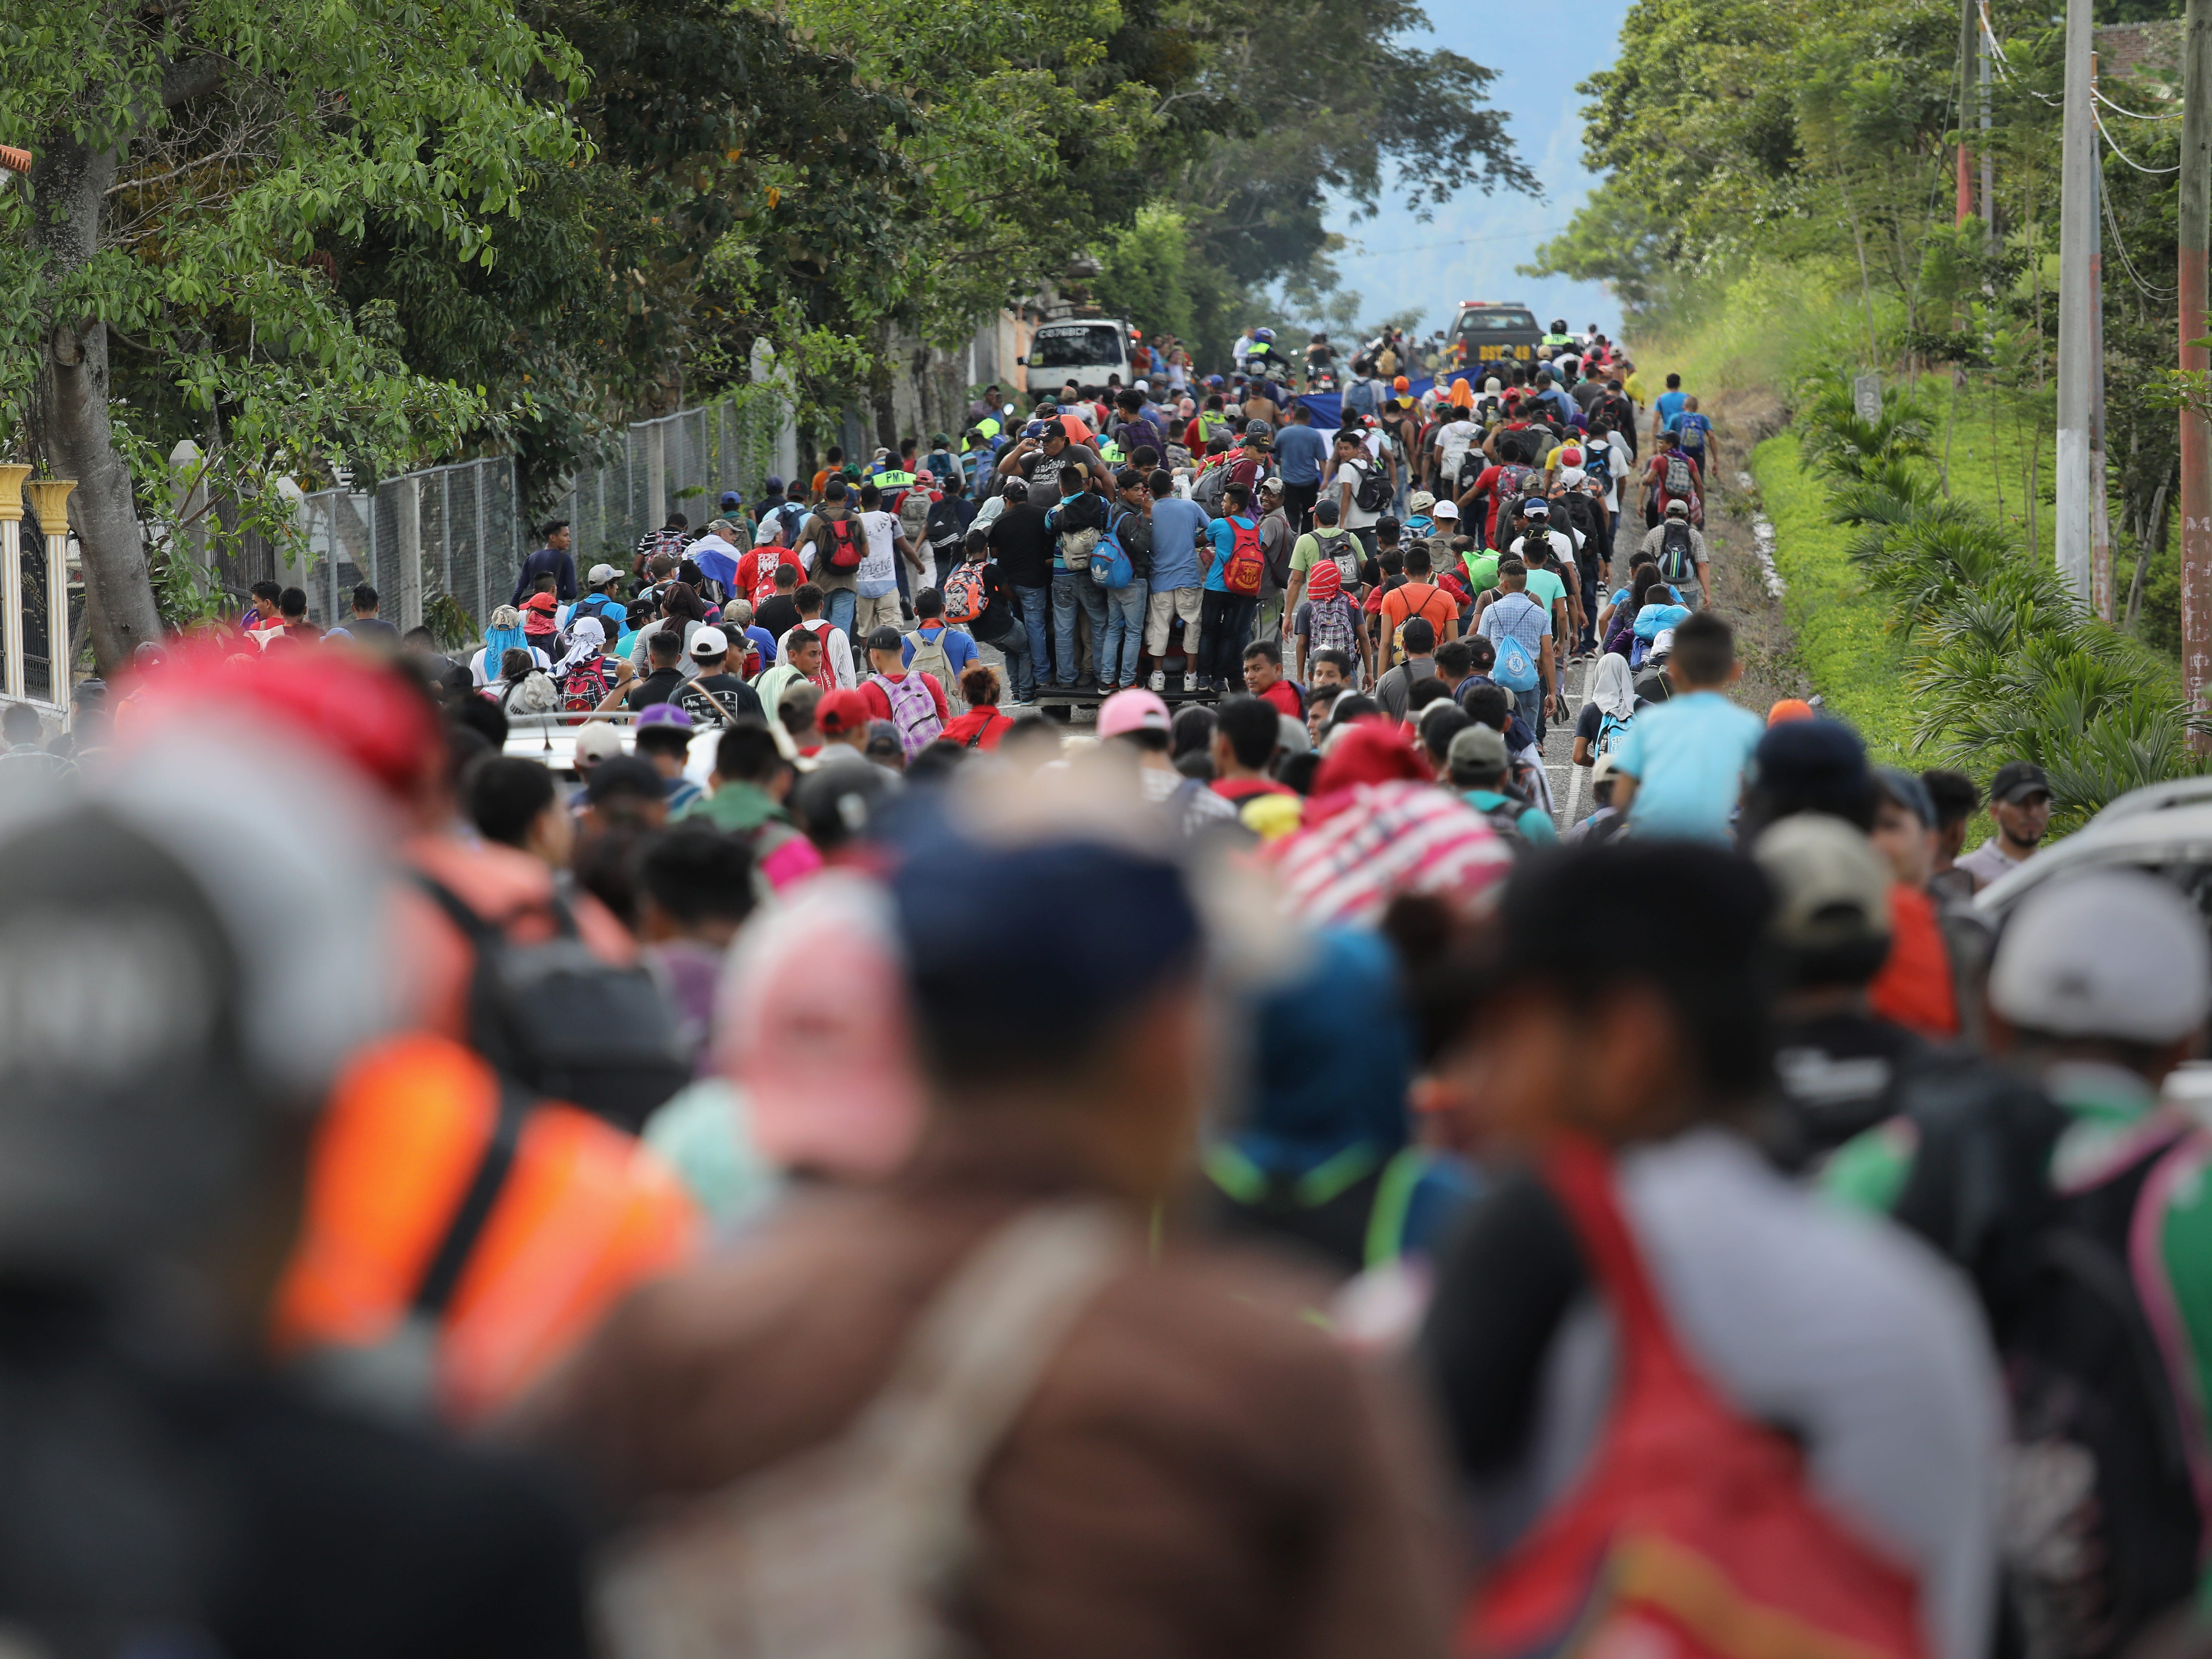 ESQUIPULAS, GUATEMALA - OCTOBER 15:  A caravan of more than 1,500 Honduran migrants moves north after crossing the border from Honduras into Guatemala on October 15, 2018 in Esquipulas, Guatemala. The caravan, the second of 2018, began Friday in San Pedro Sula, Honduras with plans to march north through Guatemala and Mexico en route to the United States. Honduras has some of the highest crime and poverty rates in Latin America.  (Photo by John Moore/Getty Images) ORG XMIT: 775243532 ORIG FILE ID: 1052219378